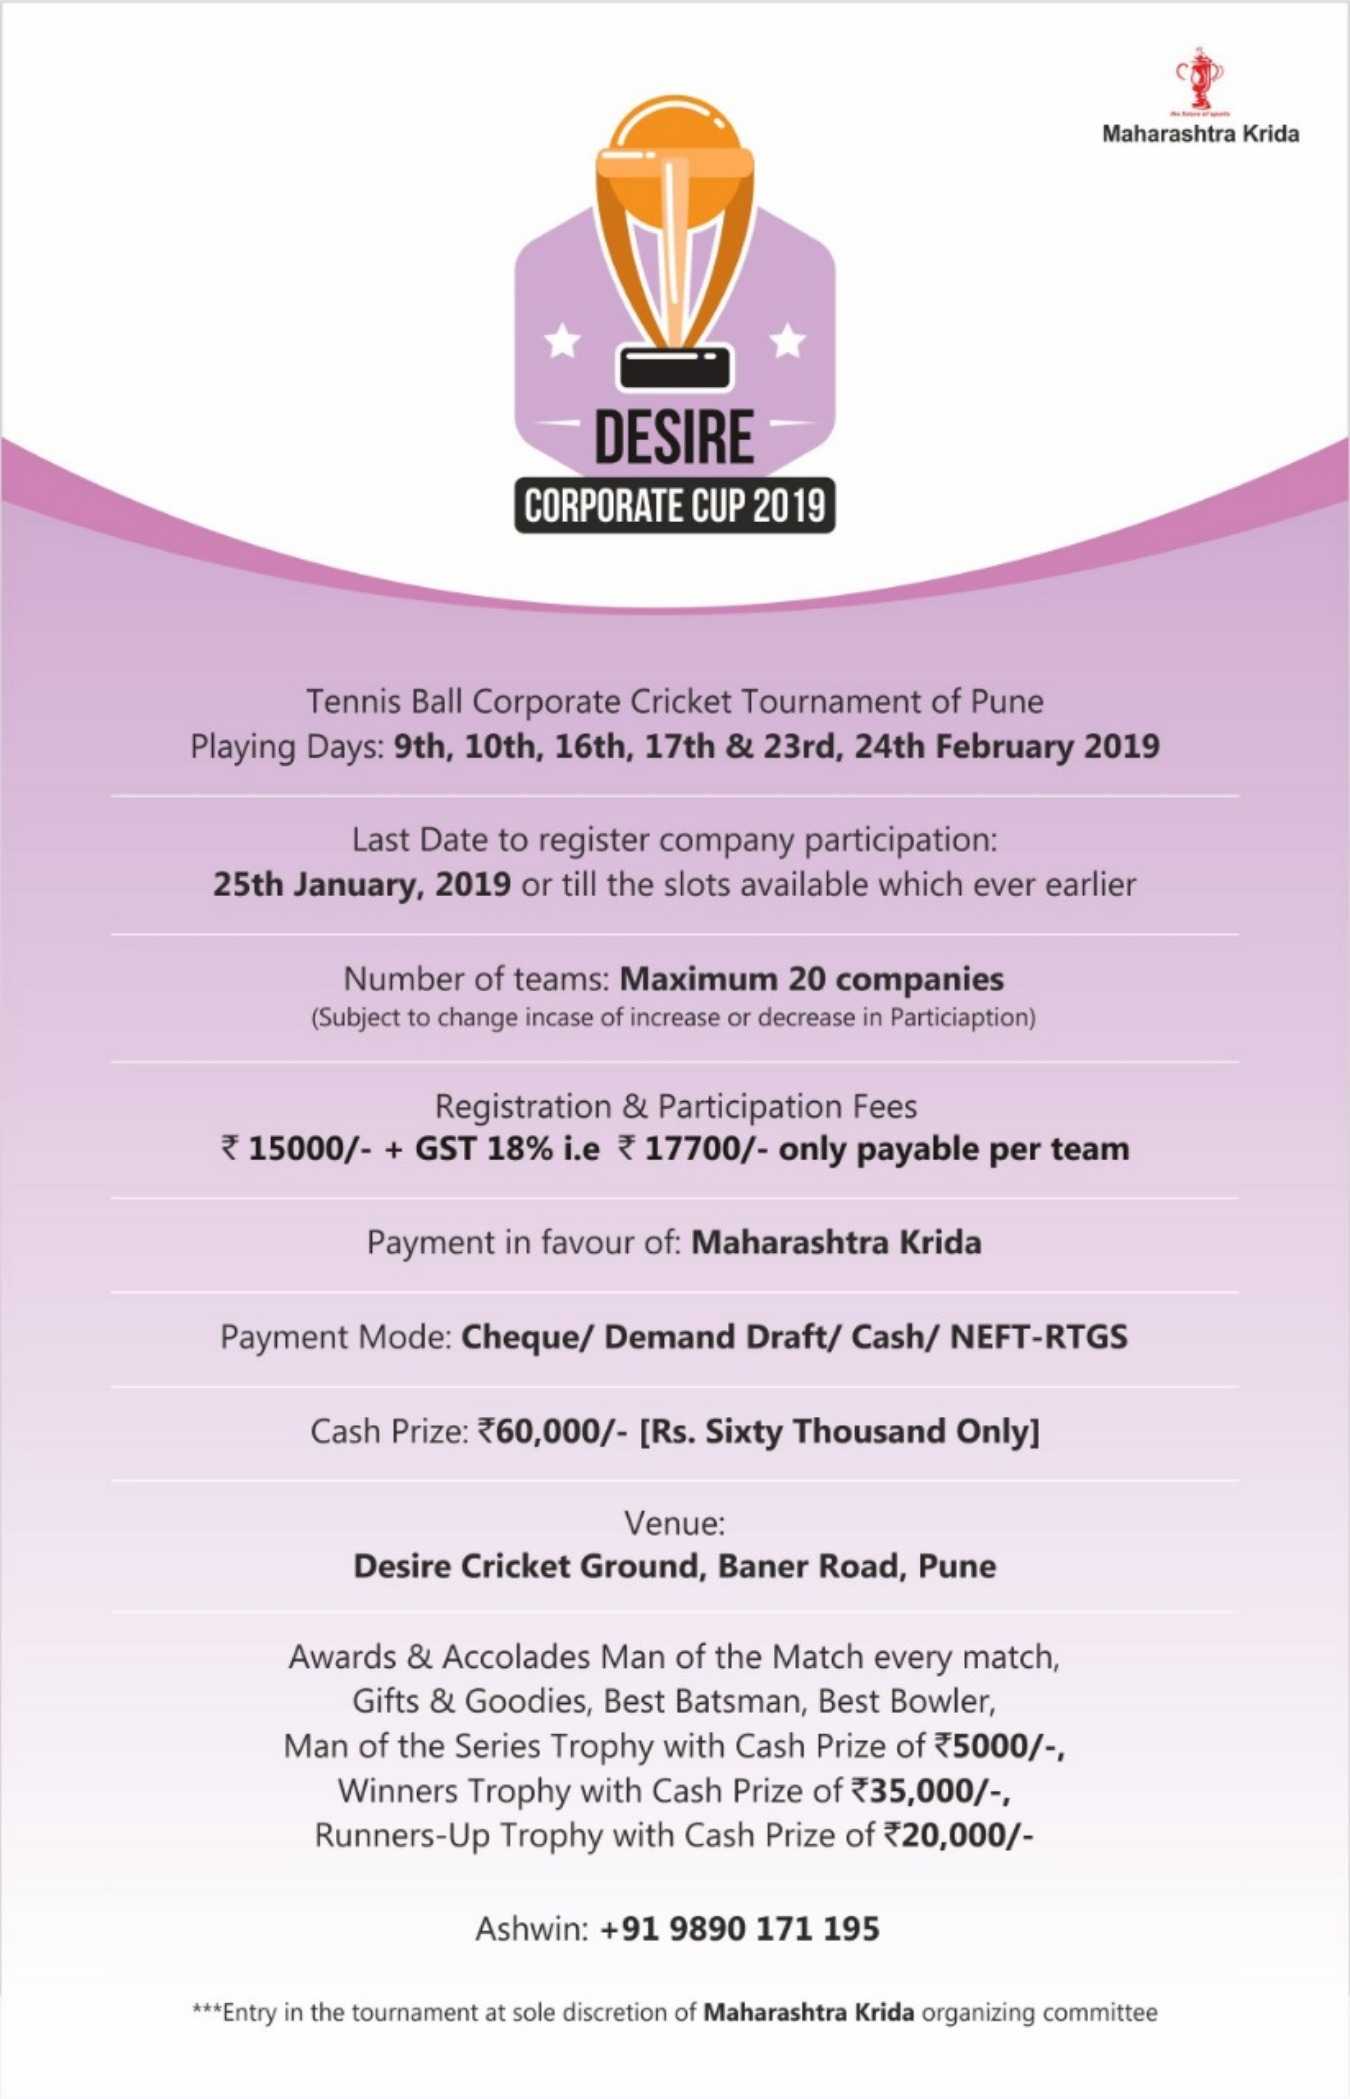 Invitation For Corporate Cricket Tournament: DESIRE CORPORATE CUP TENNIS BALL CRICKET TOURNAMENT 2019